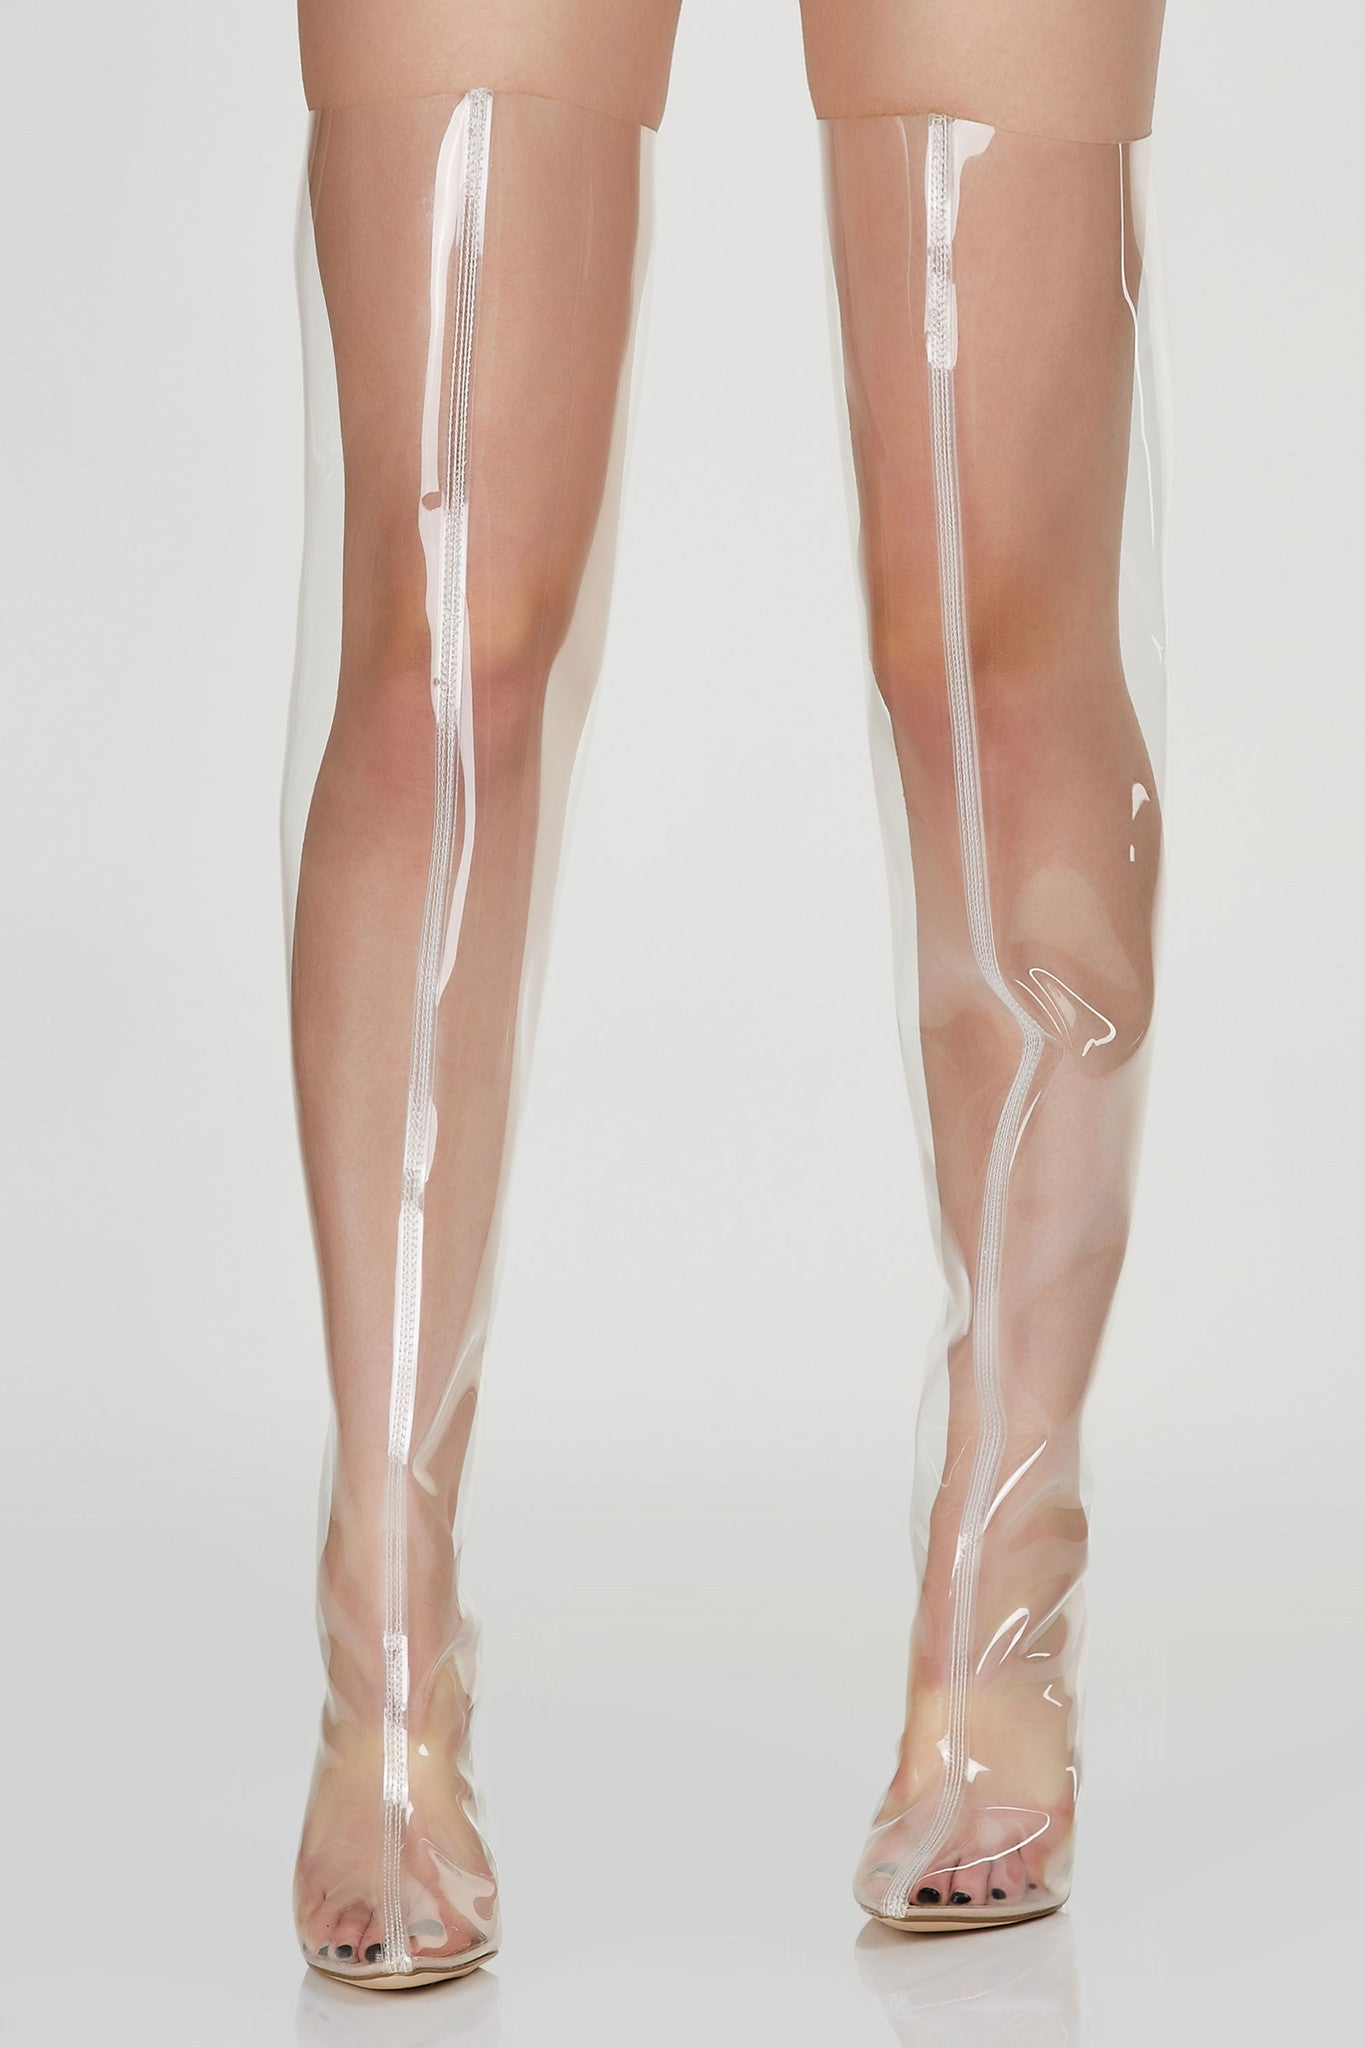 See through thigh high boots with back zip closure. Pointed toe with clear block heels.